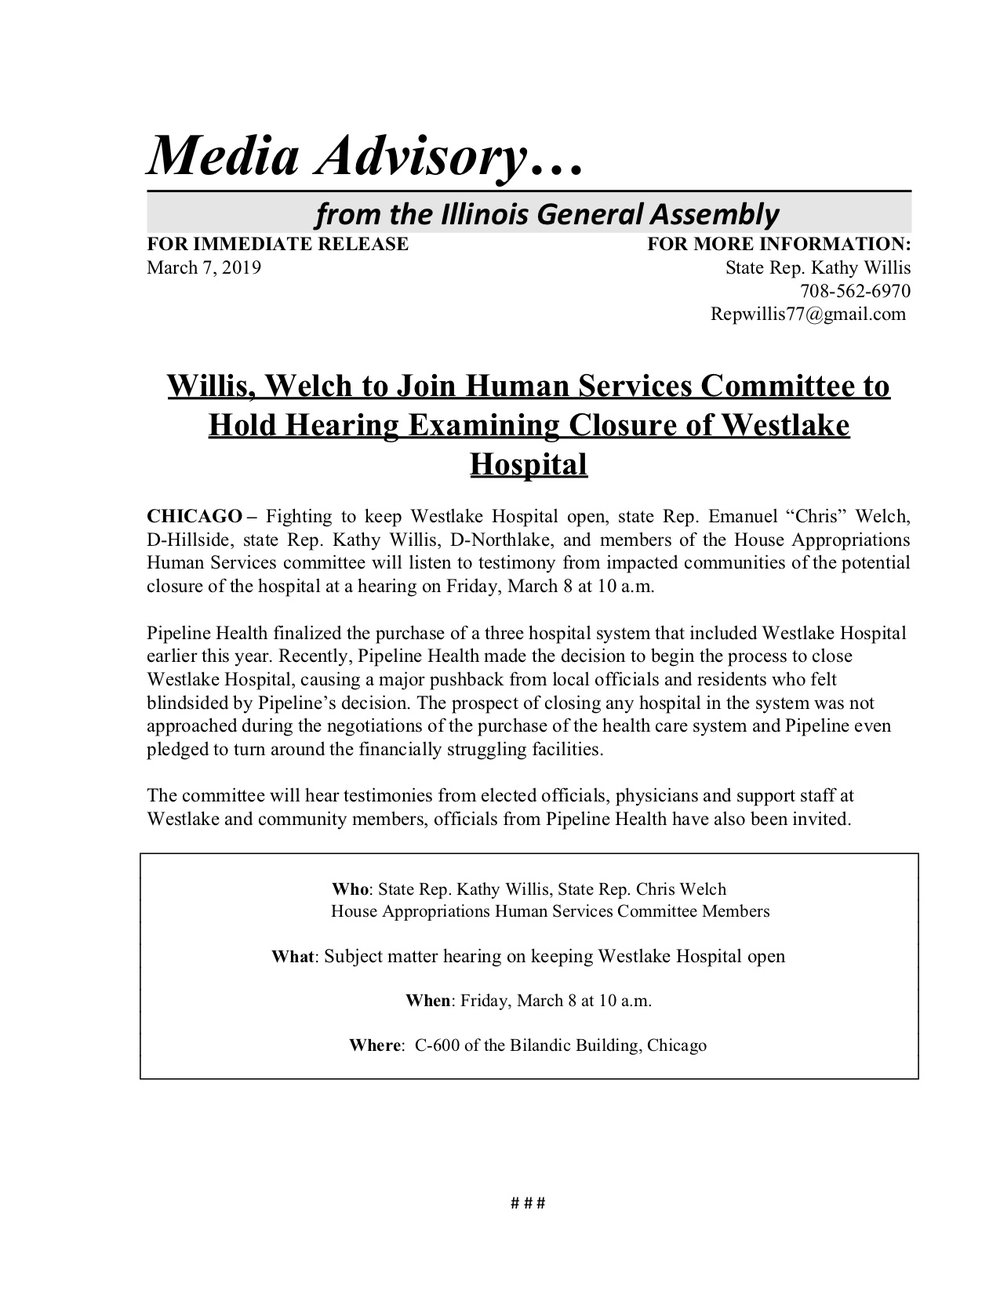 Willis, Welch to Join Human Services Committee to Hold Hearing Examining Closure of Westlake Hospital  (March 7, 2019)